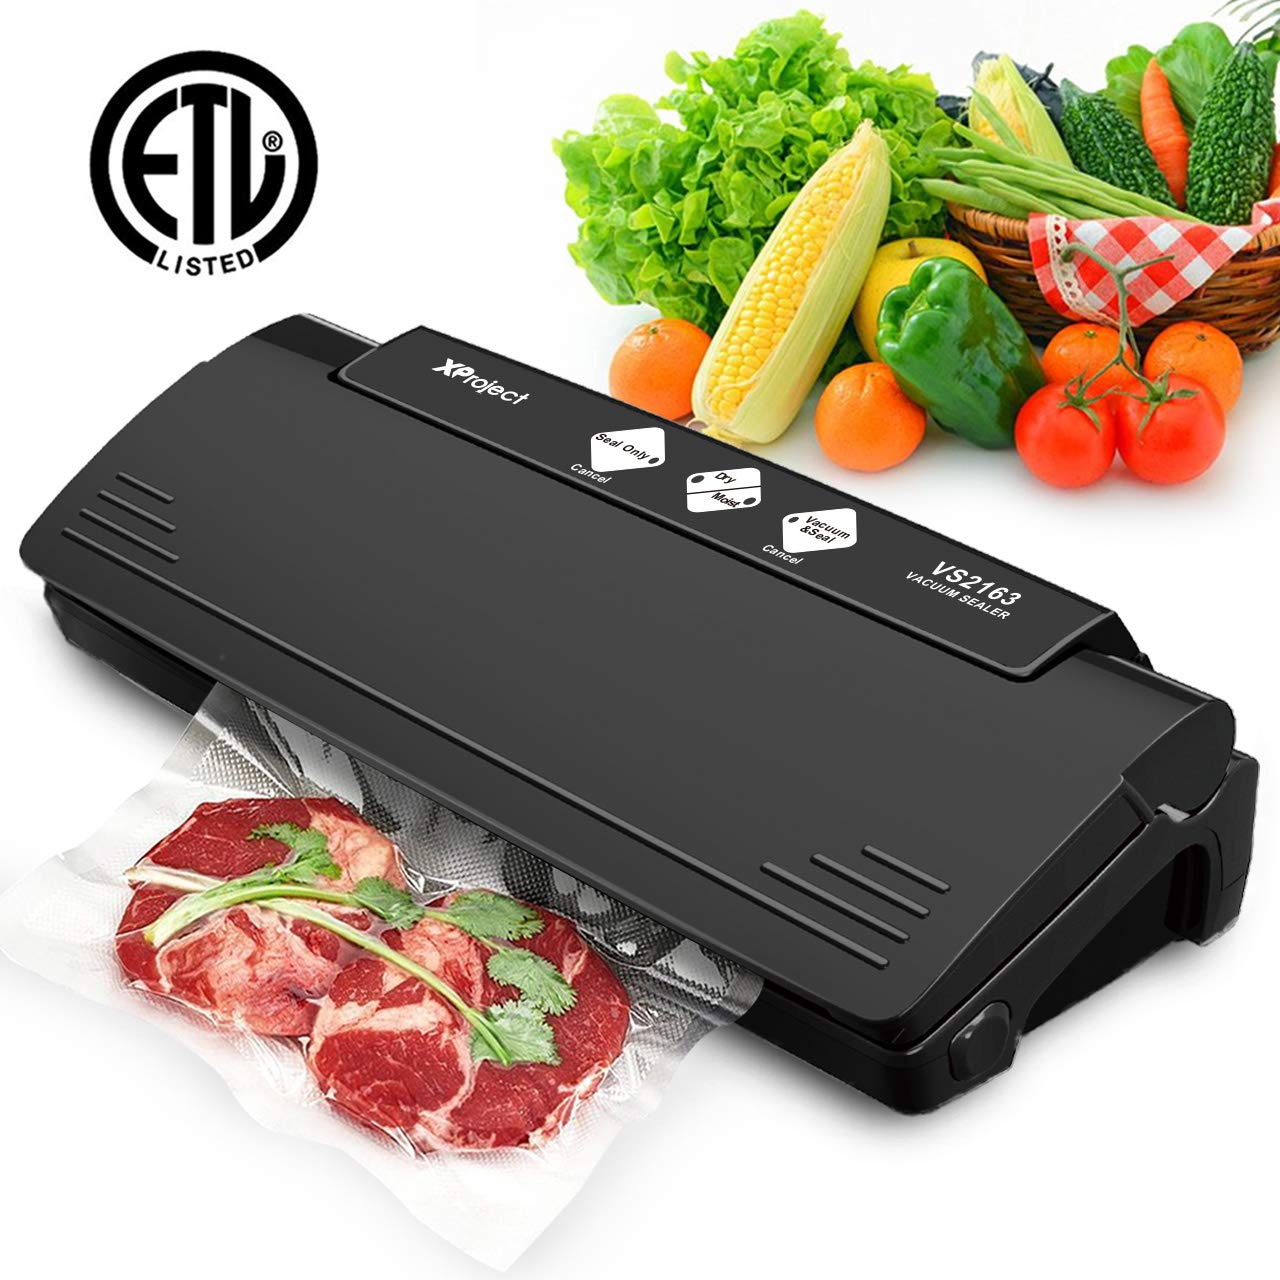 XProject Vacuum Sealer Machine Multifunction Automatic Sealing System Dry and Moist Food Mode for Food Preservation and Sous Vide